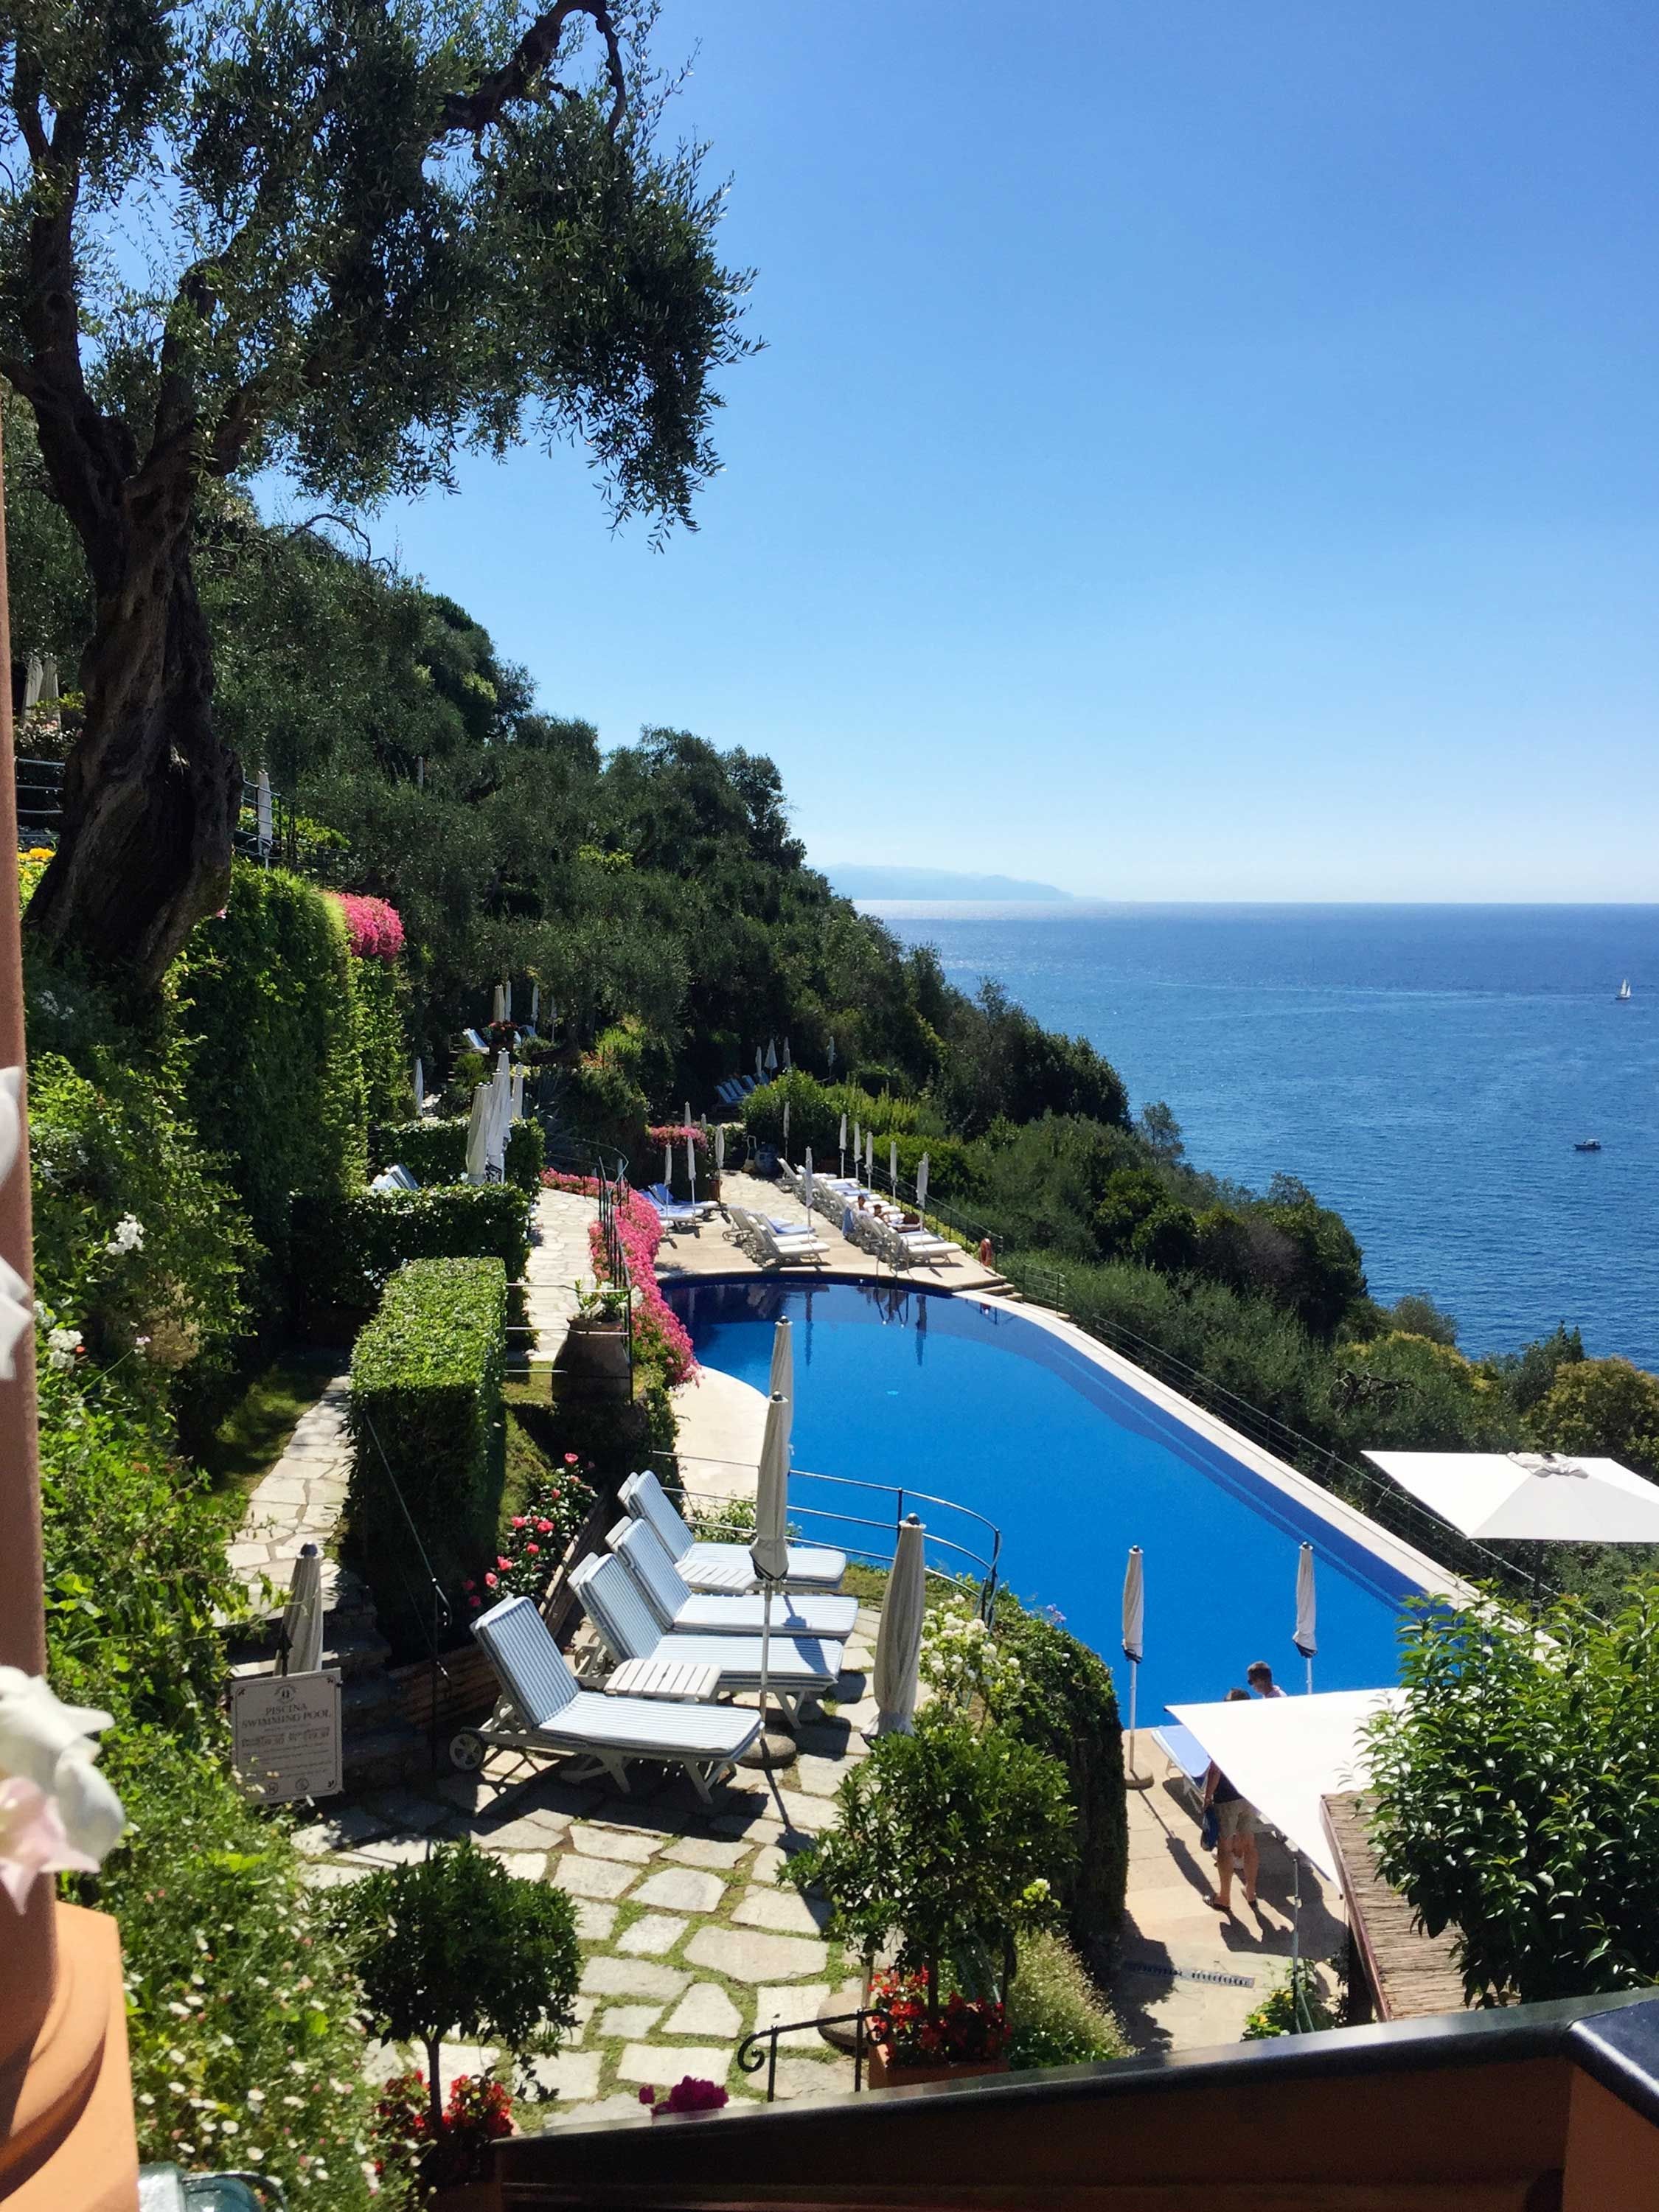 The pool at Hotel Splendido sits amongst thick greenery on the side of a mountain and overlooks the deep blue Mediterranean